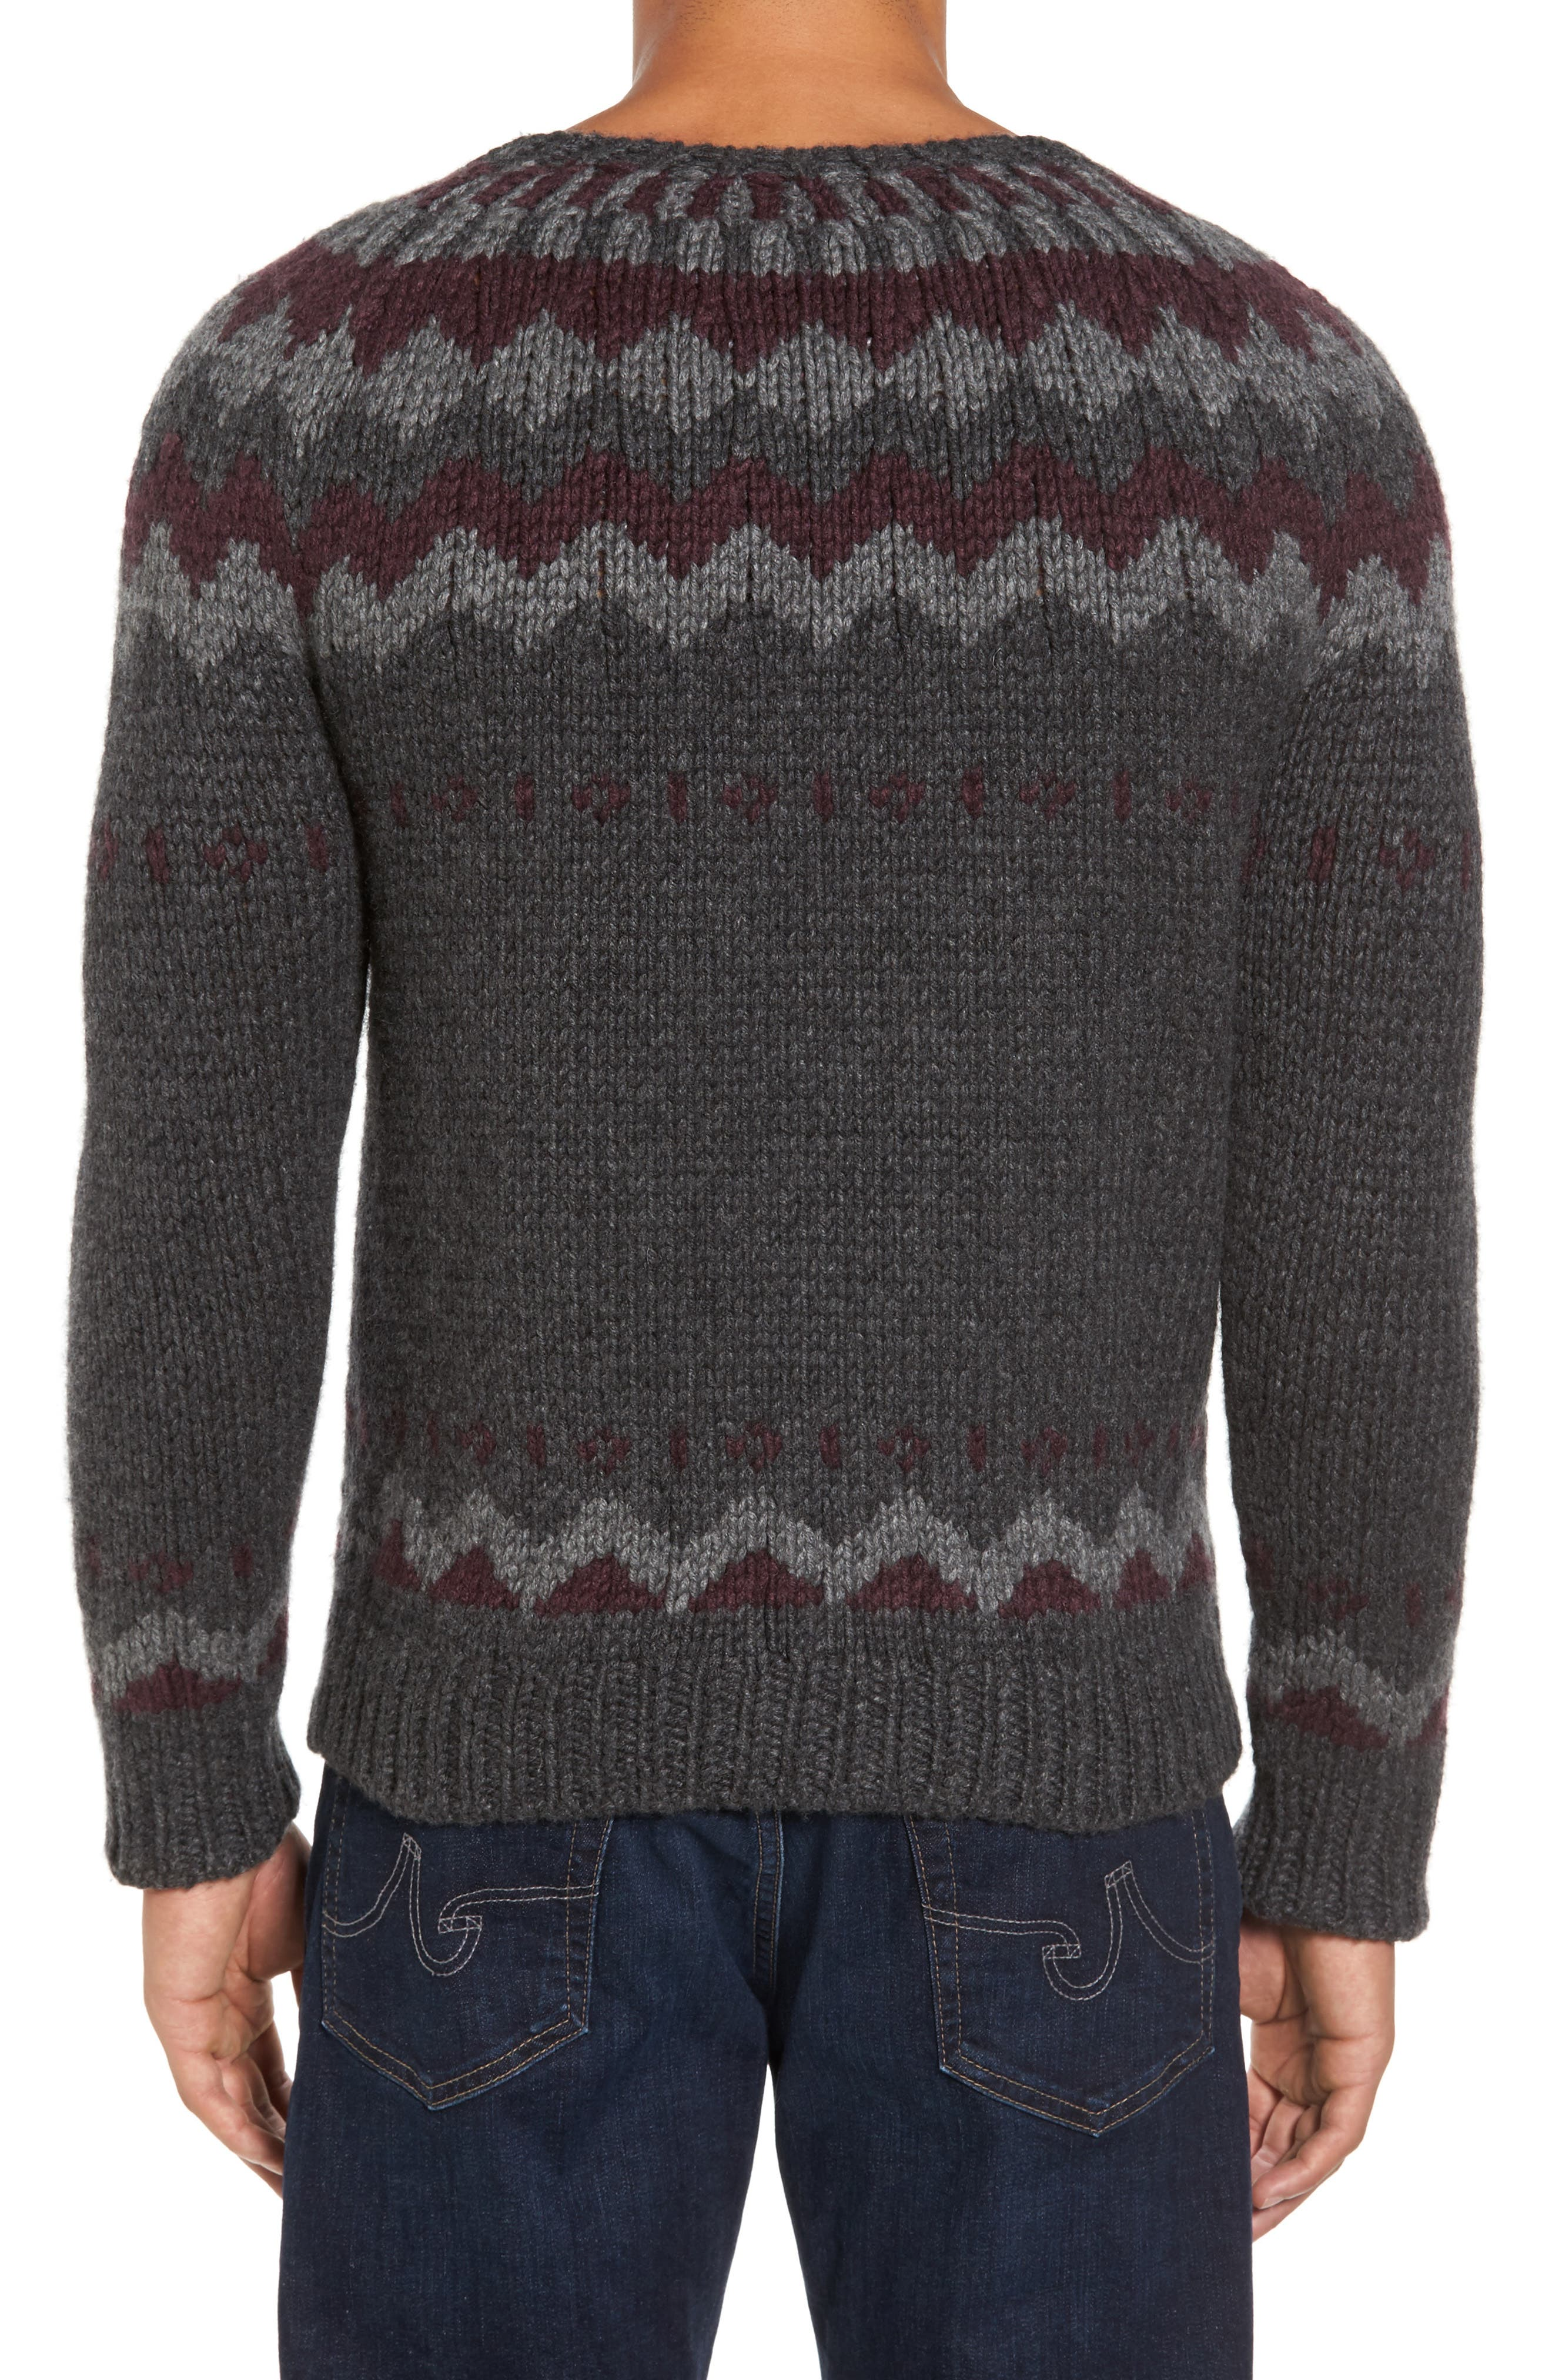 Intarsia Cashmere Sweater,                             Alternate thumbnail 2, color,                             Grey / Burgundy/ Light Grey